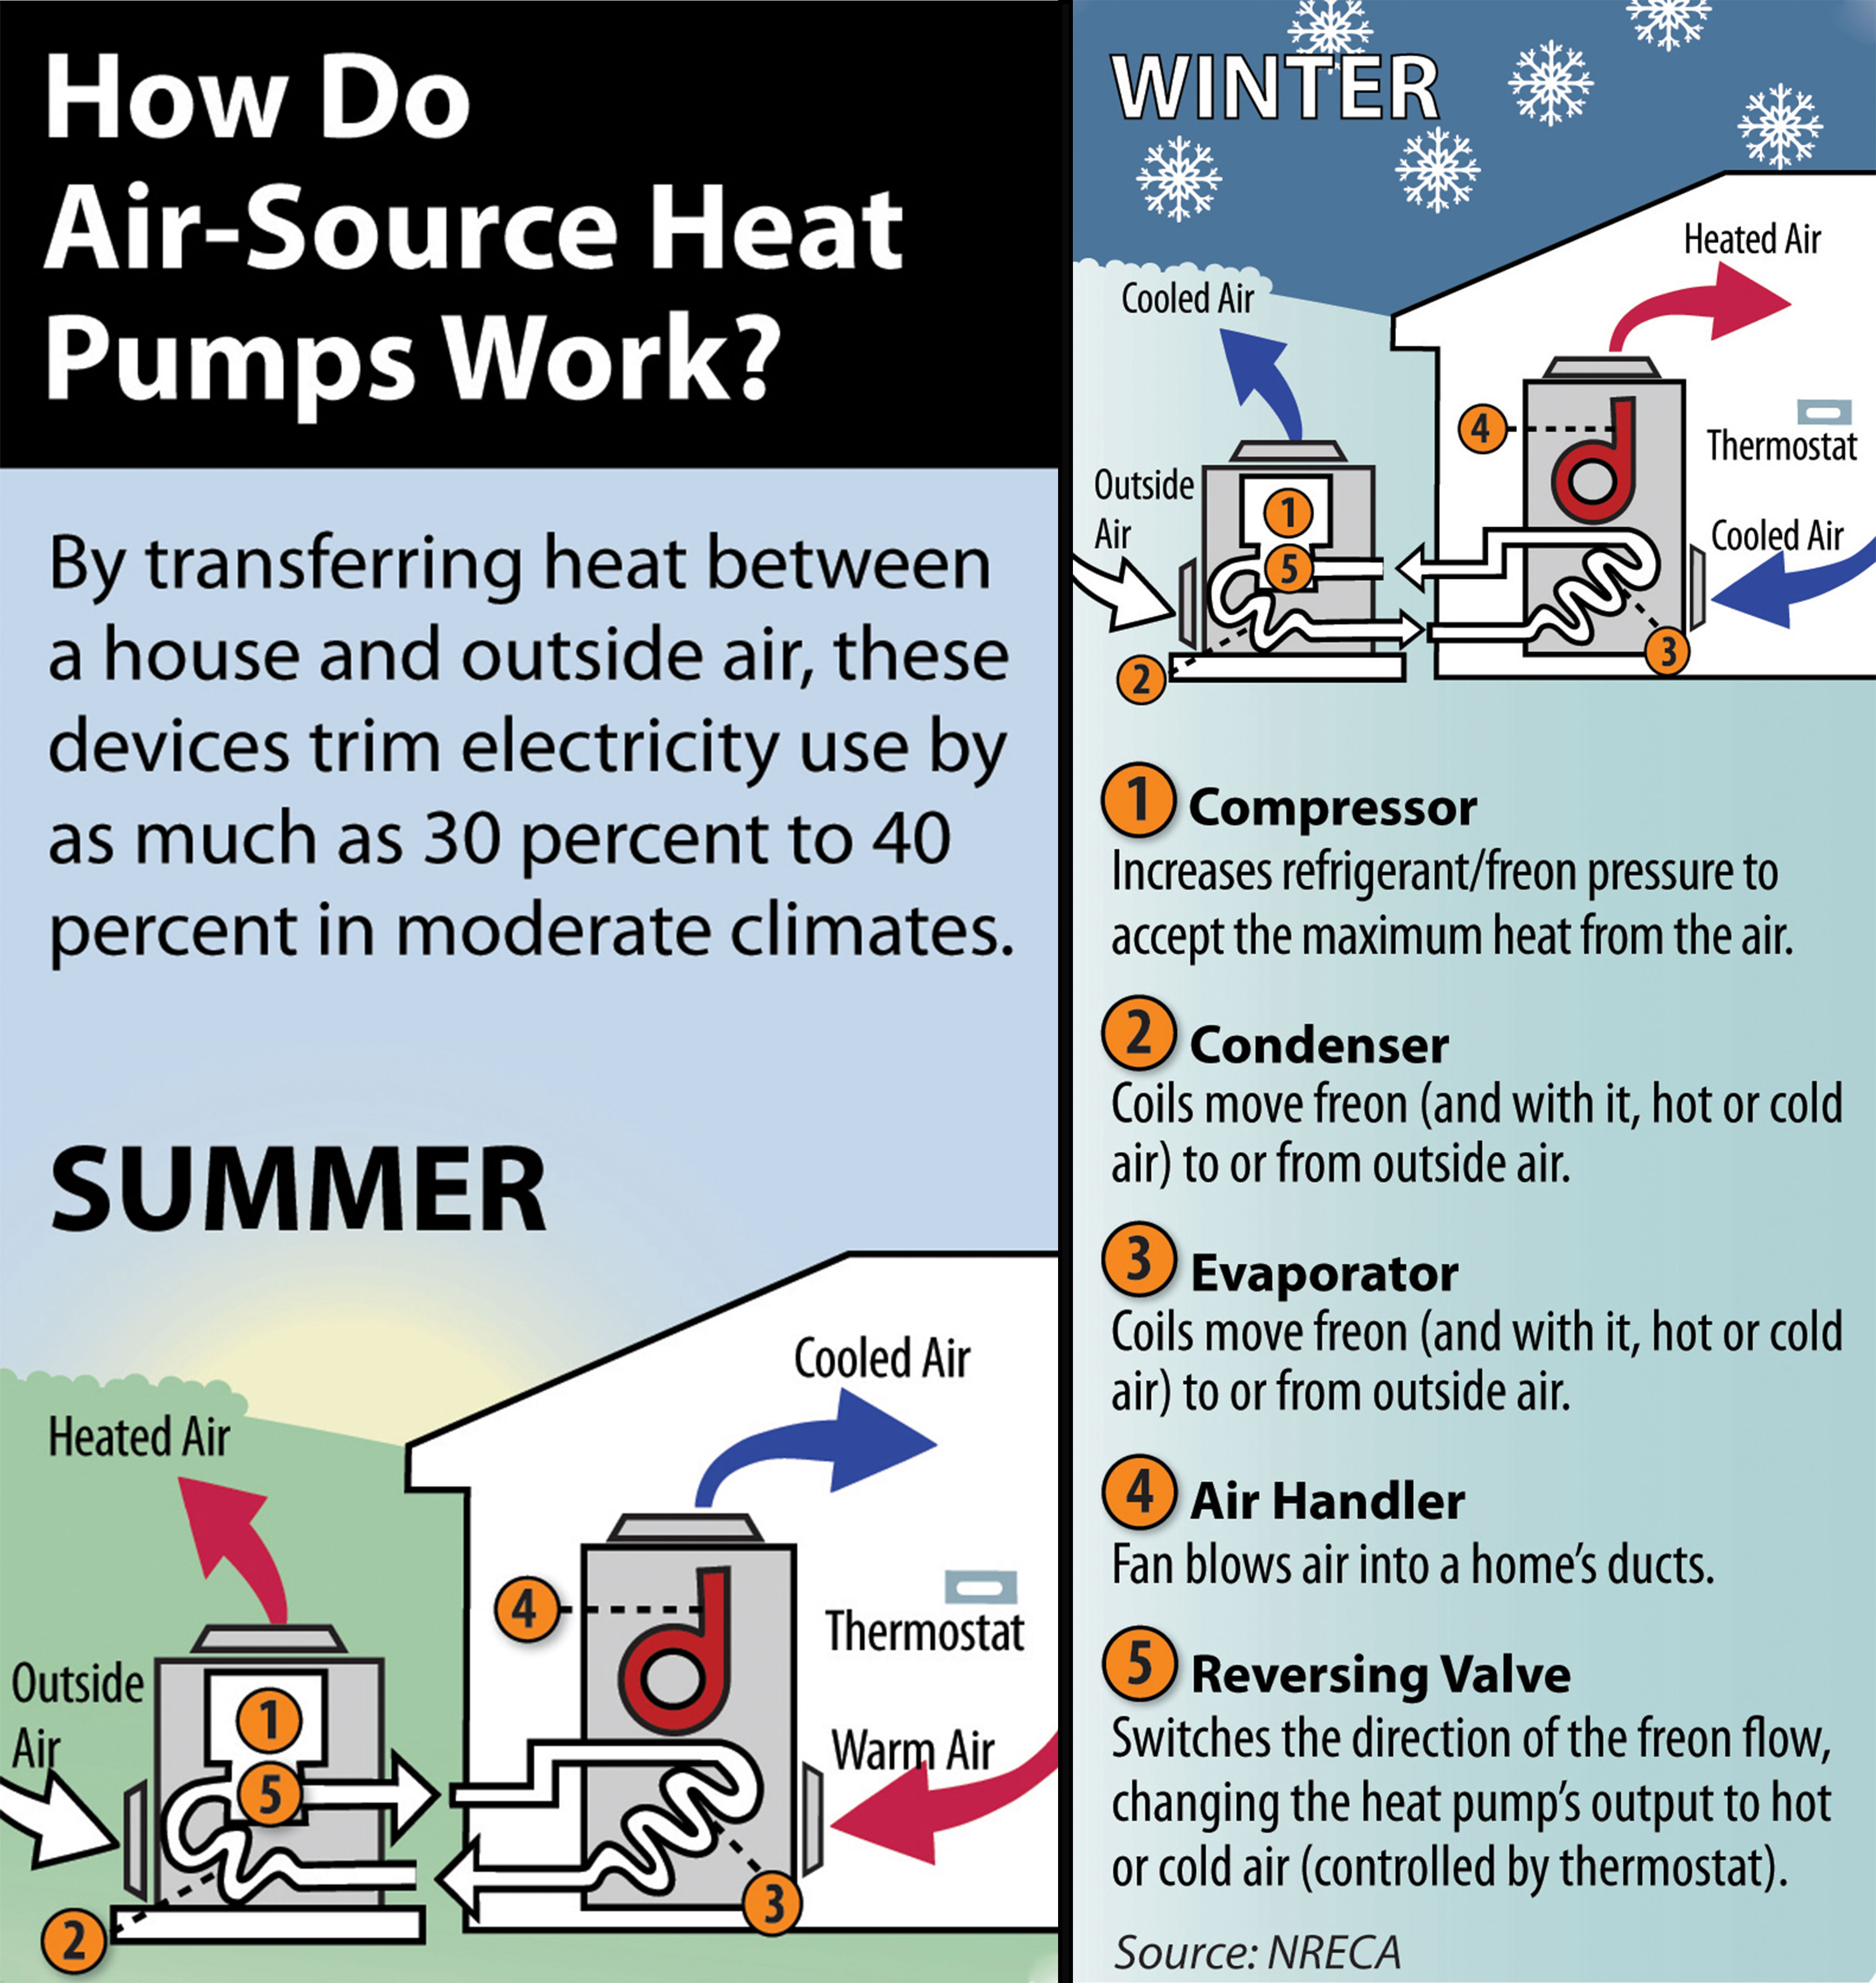 How do air source heat pumps work